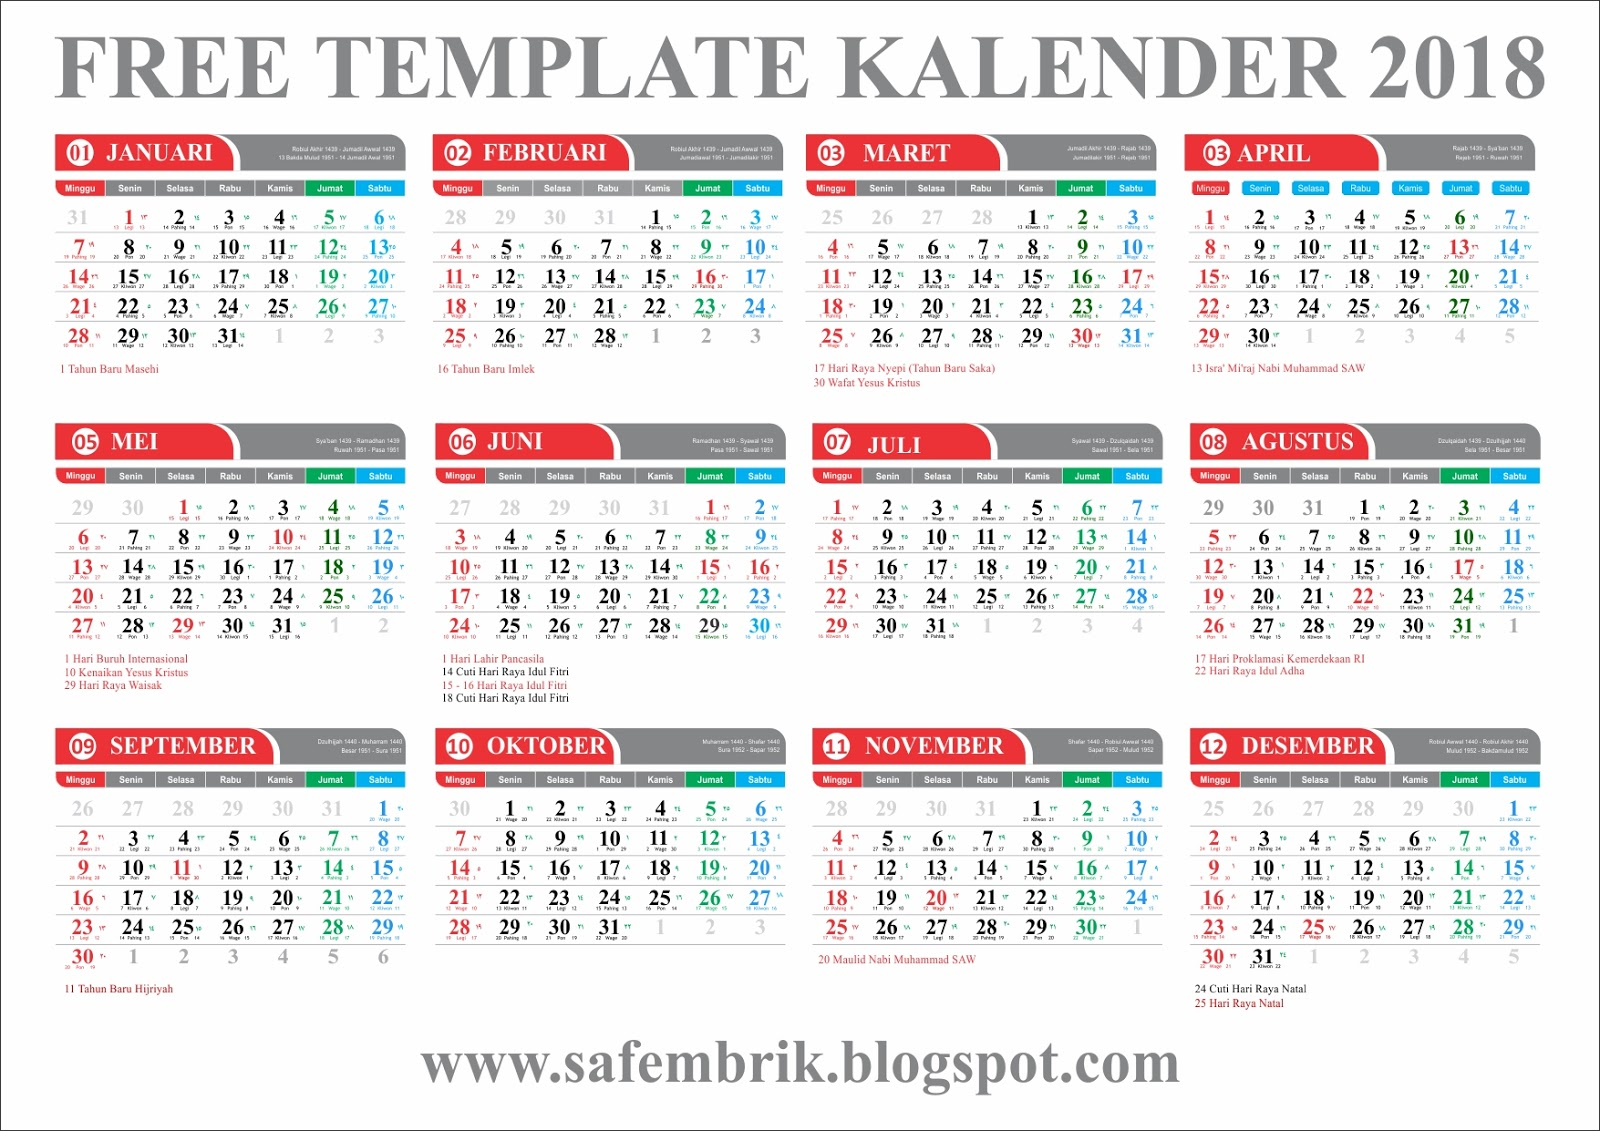 Download Gratis Free Template Kalender 2018 Lengkap ...